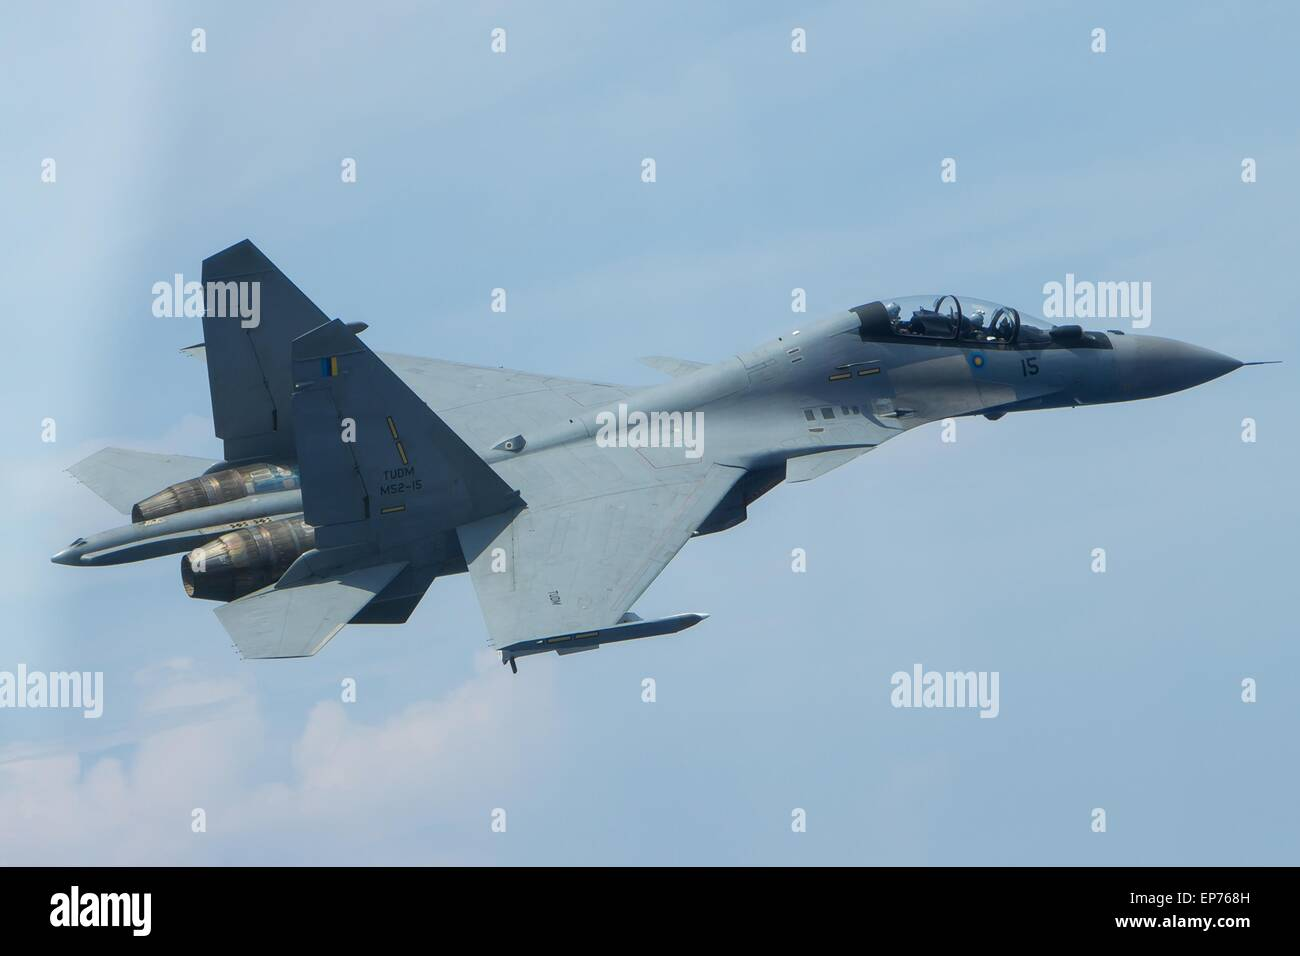 A Russian made Royal Malaysian Air Force Sukhoi SU-30MKM Flanker H fighter during a joint exercise with the aircraft - Stock Image